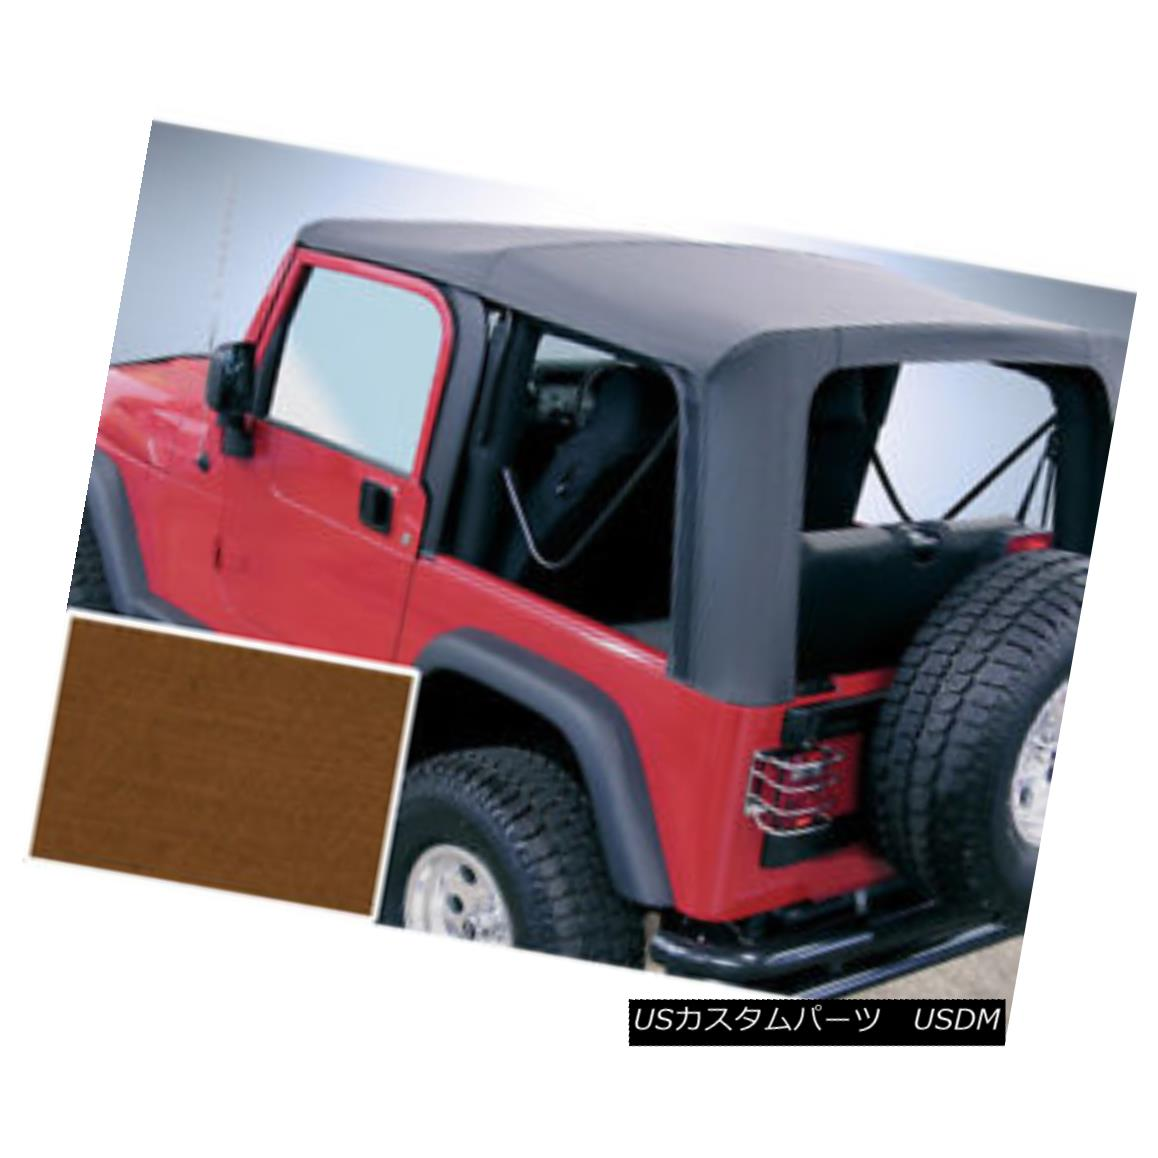 幌・ソフトトップ Rugged Ridge 13705.33 Soft Top Dark Tan Clear Windows 97-02 Jeep Wrangler Rugged Ridge 13705.33ソフトトップDark Tan Clear Windows 97-02ジープラングラー